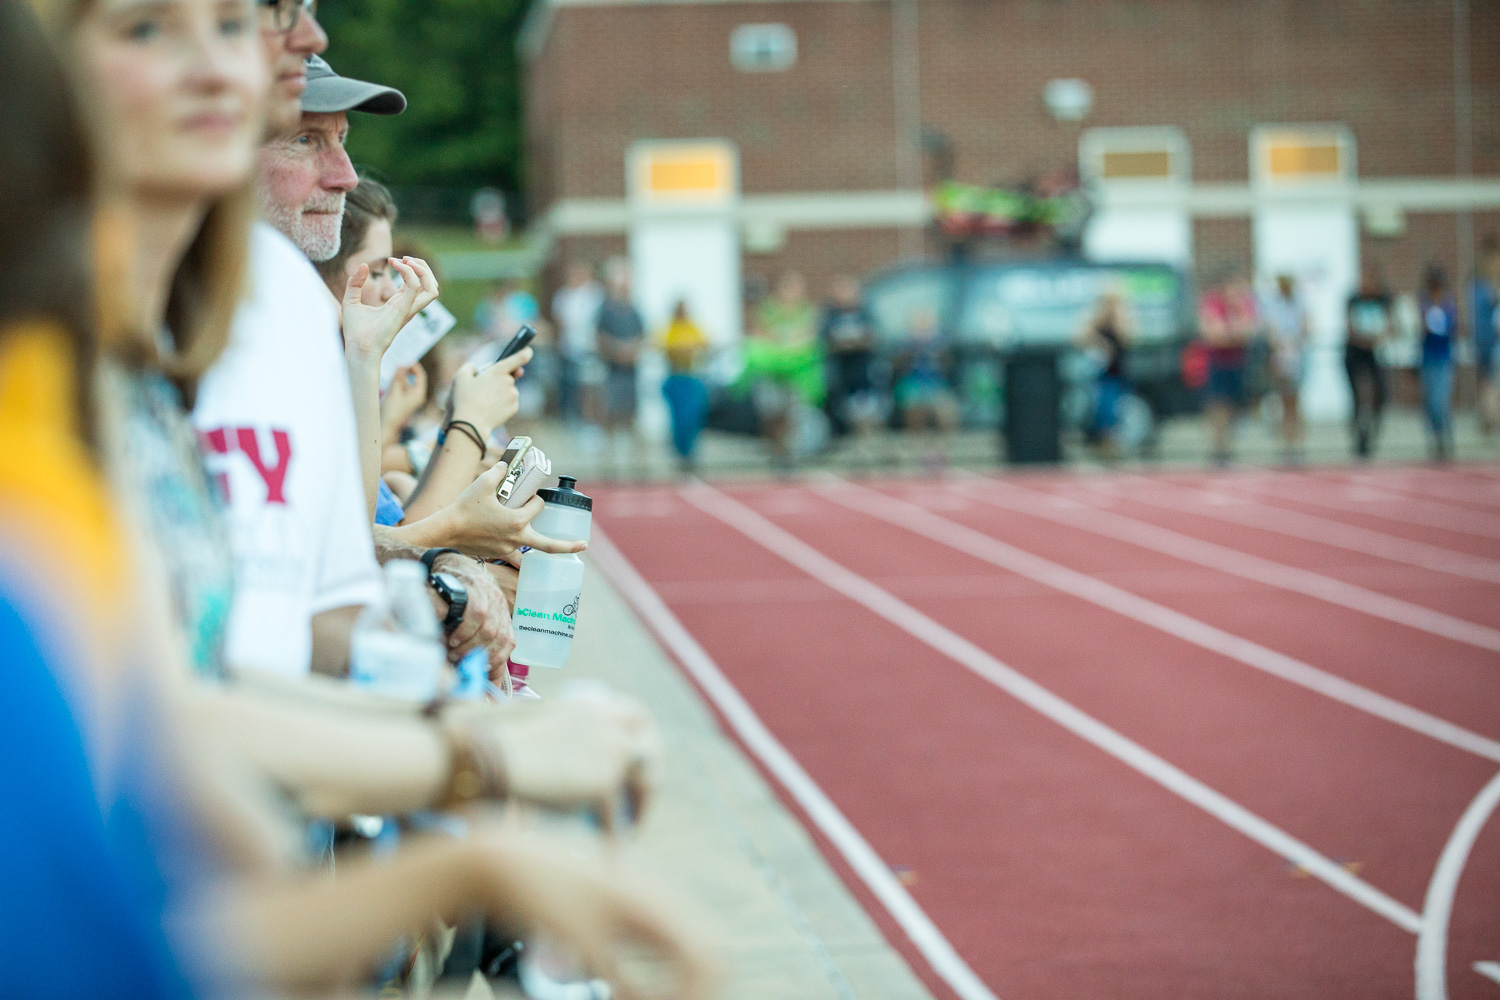 Spectators gather before the start of Sir Walter Miler races